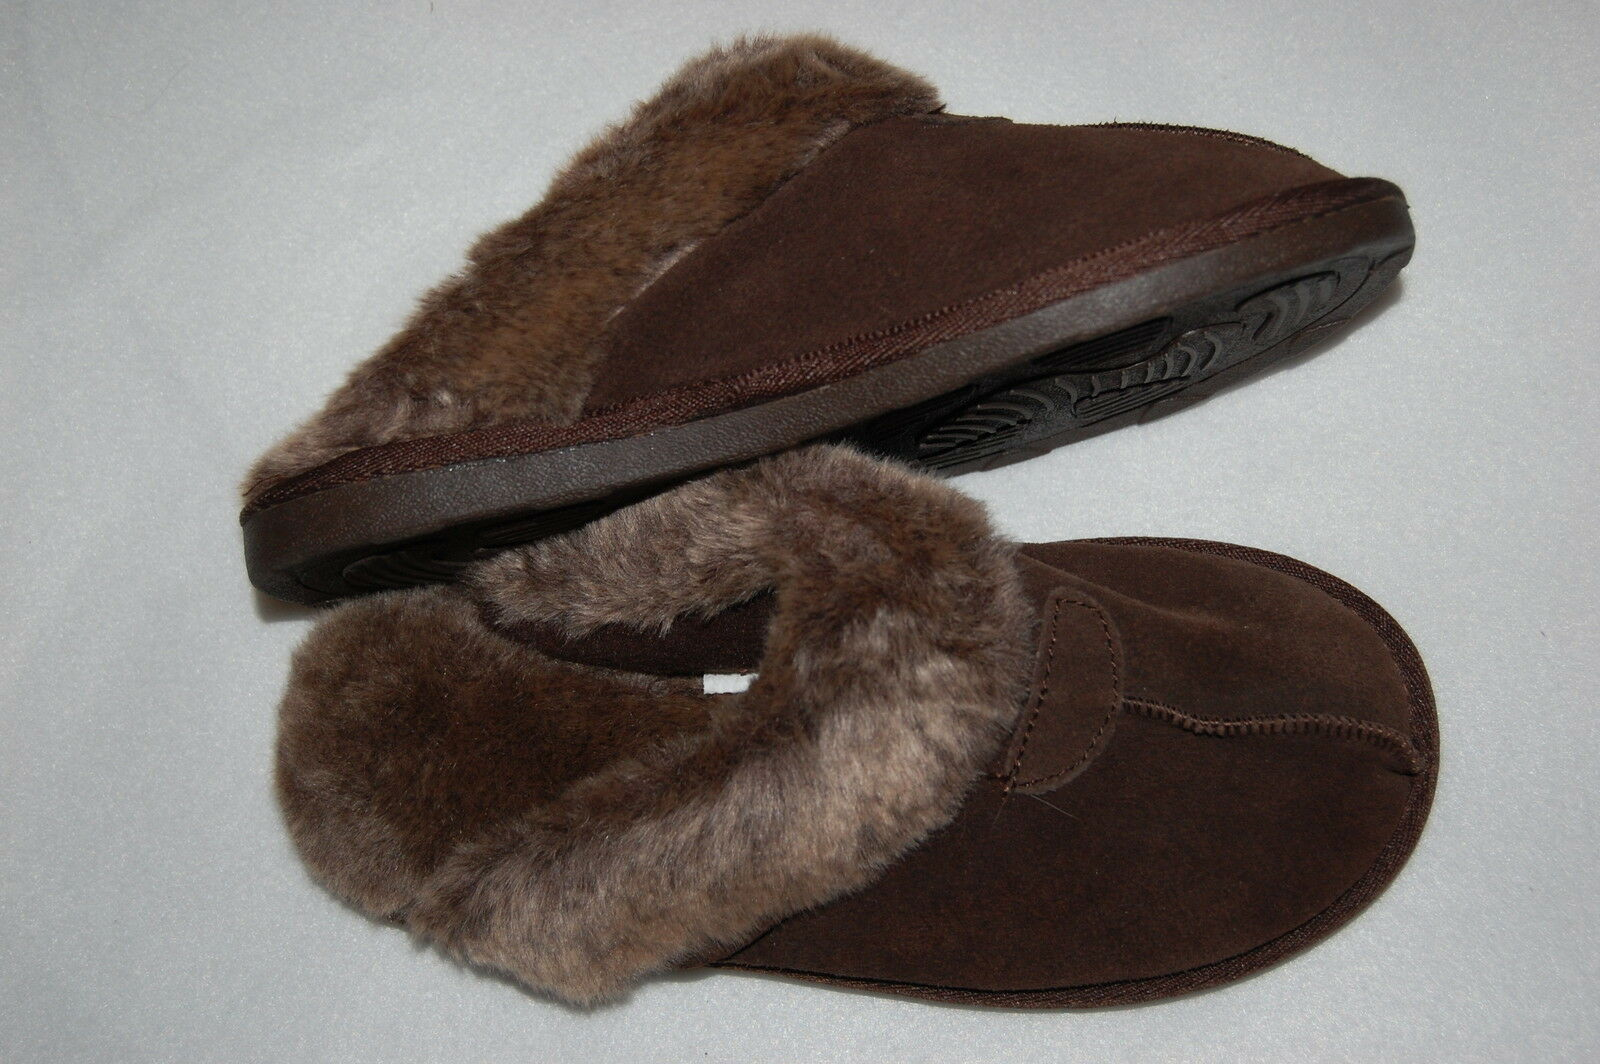 WOMENS SLIPPERS Chocolate Brown S 5-6 Upper Leather FAUX FUR Super Cushioned